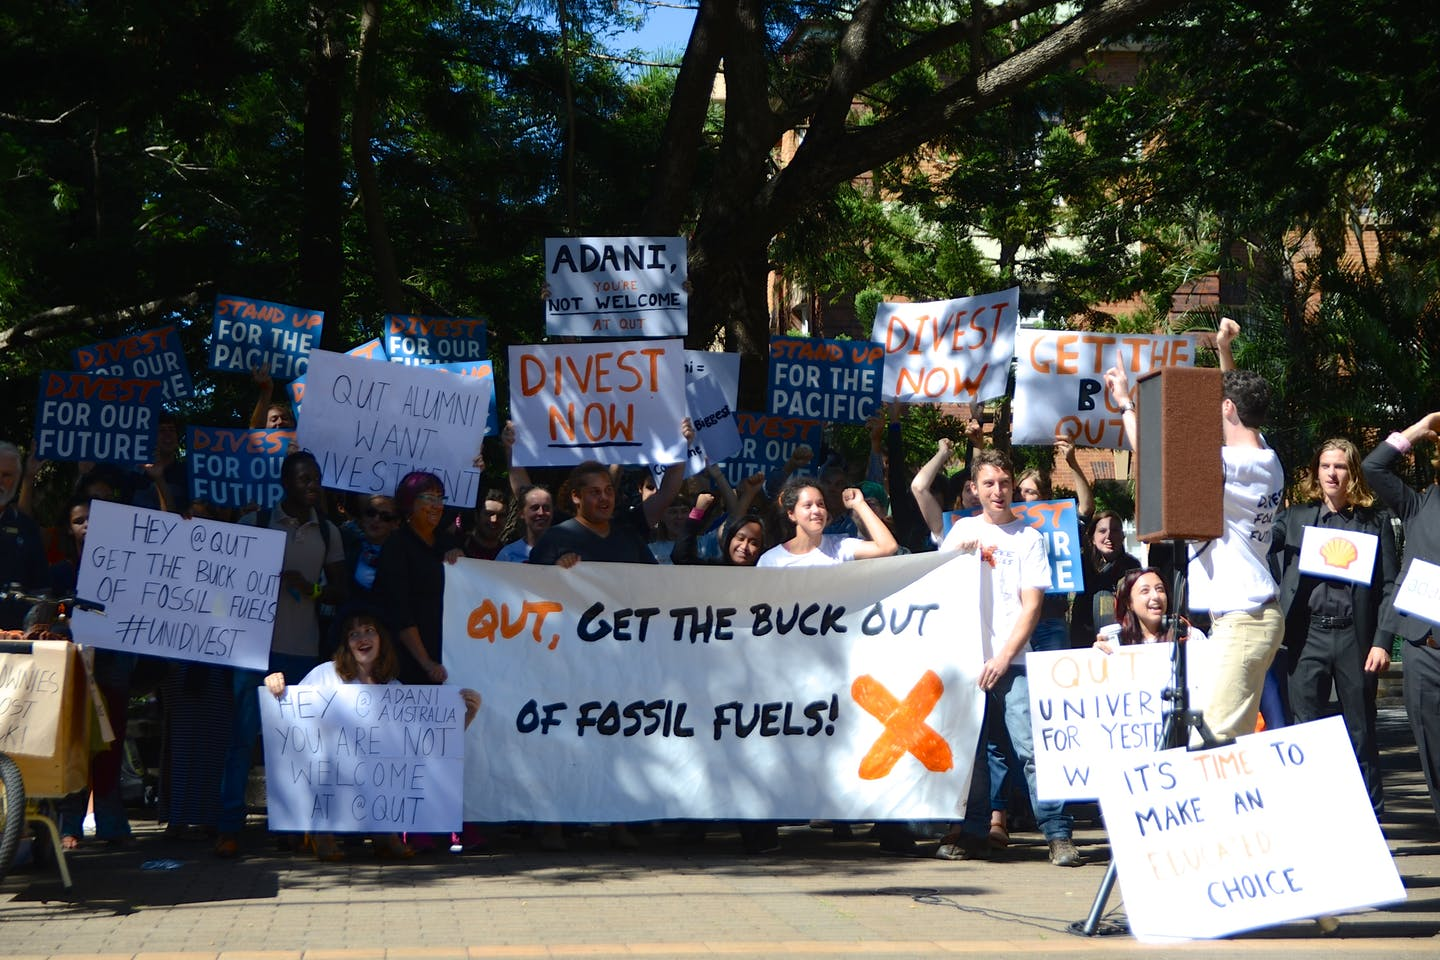 Get the buck out of fossil fuels